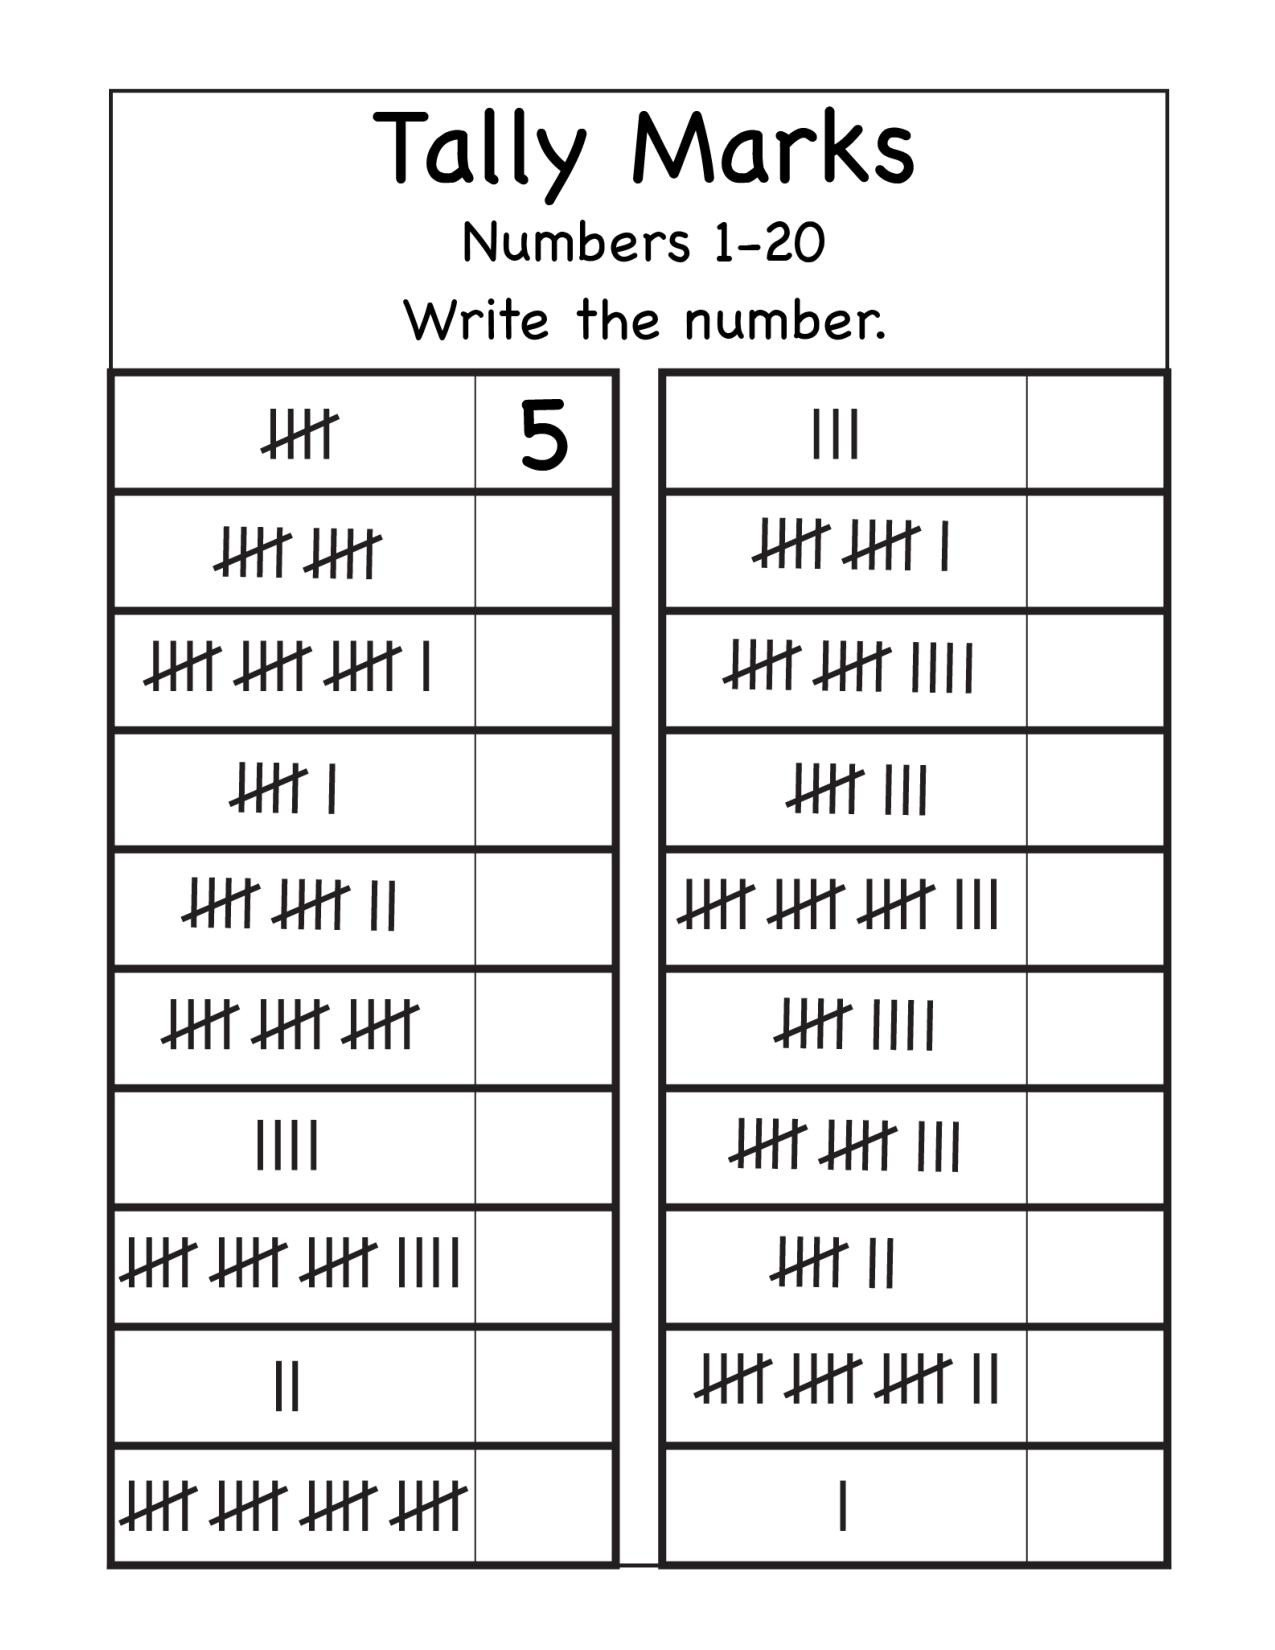 wfun15 tally marks number 1 page 001